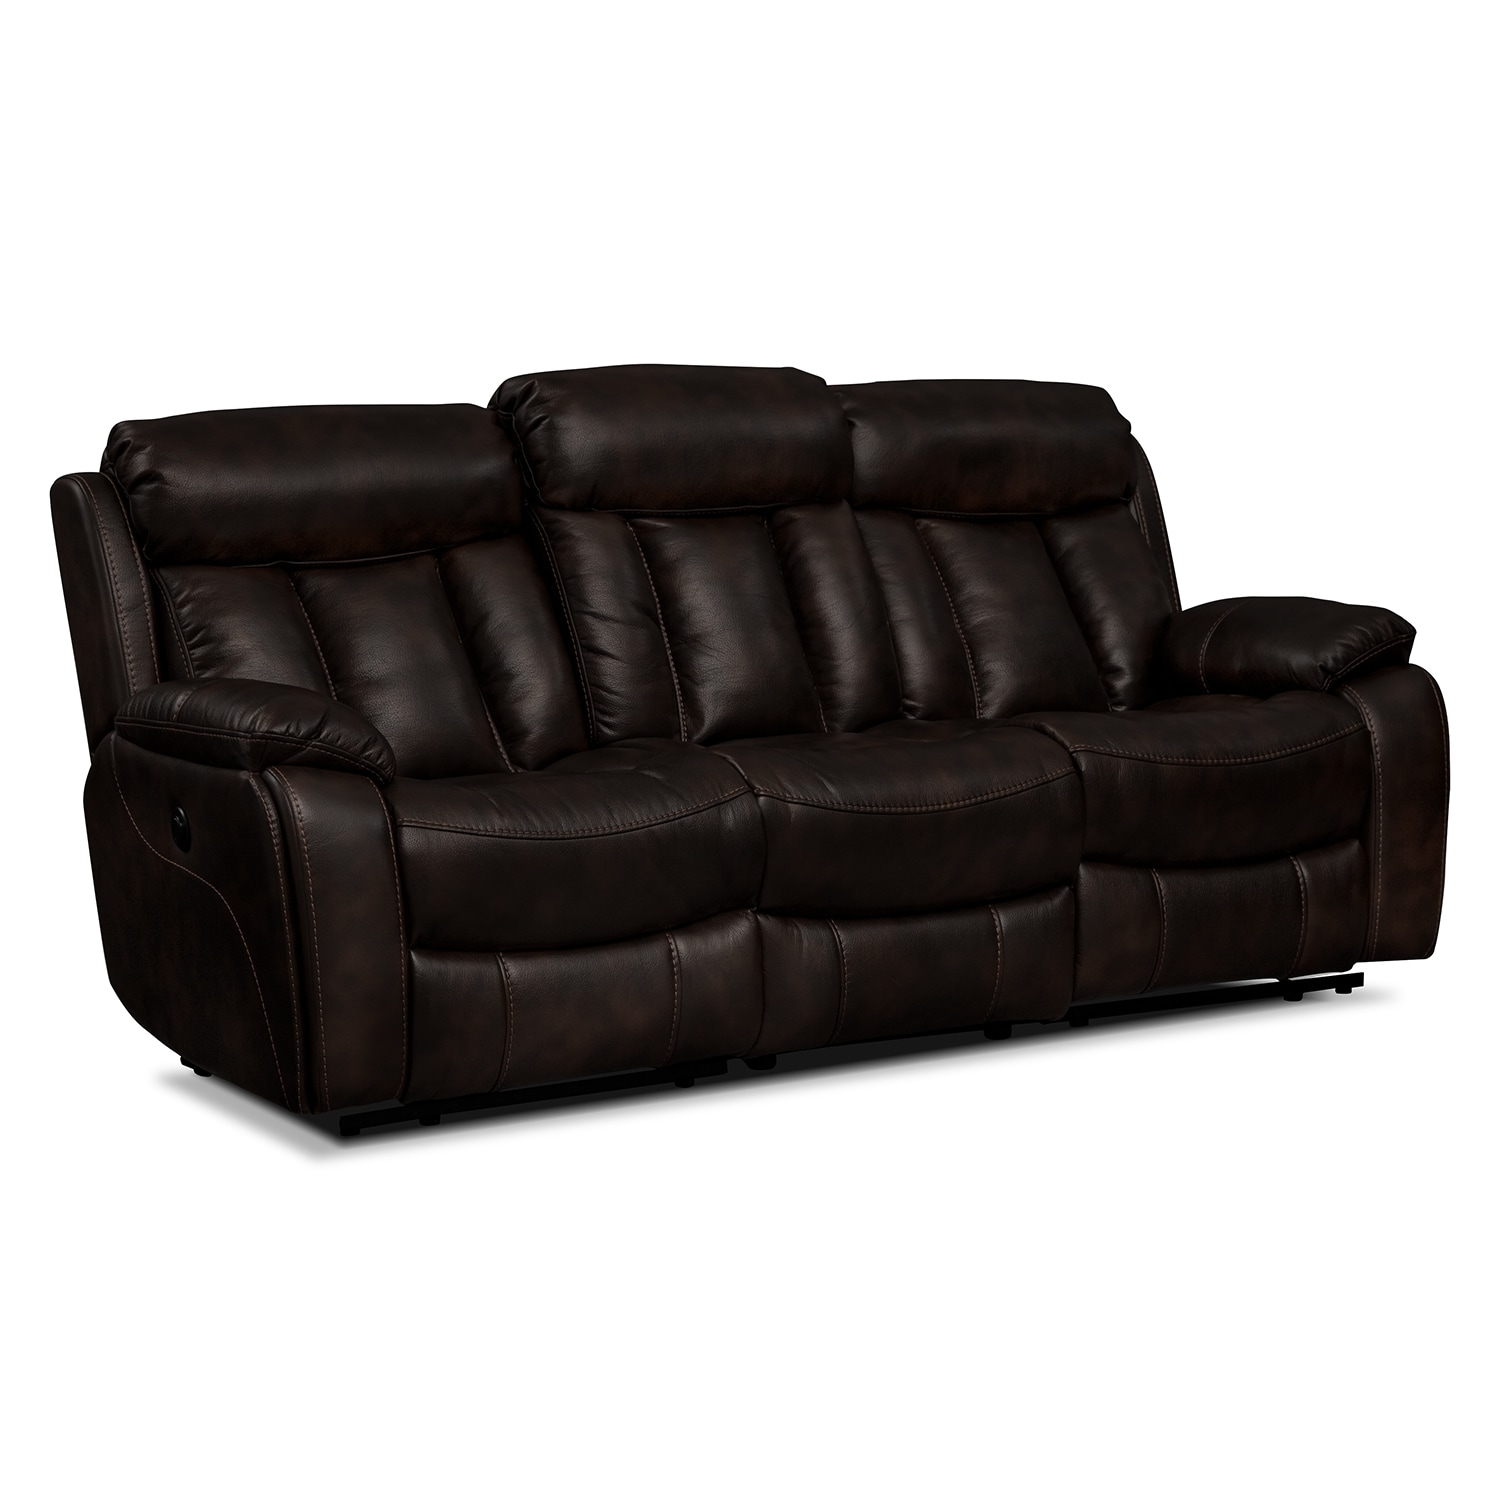 Diablo Power Reclining Sofa - Walnut by One80  sc 1 st  American Signature Furniture & Diablo Power Reclining Sofa - Walnut | American Signature Furniture islam-shia.org